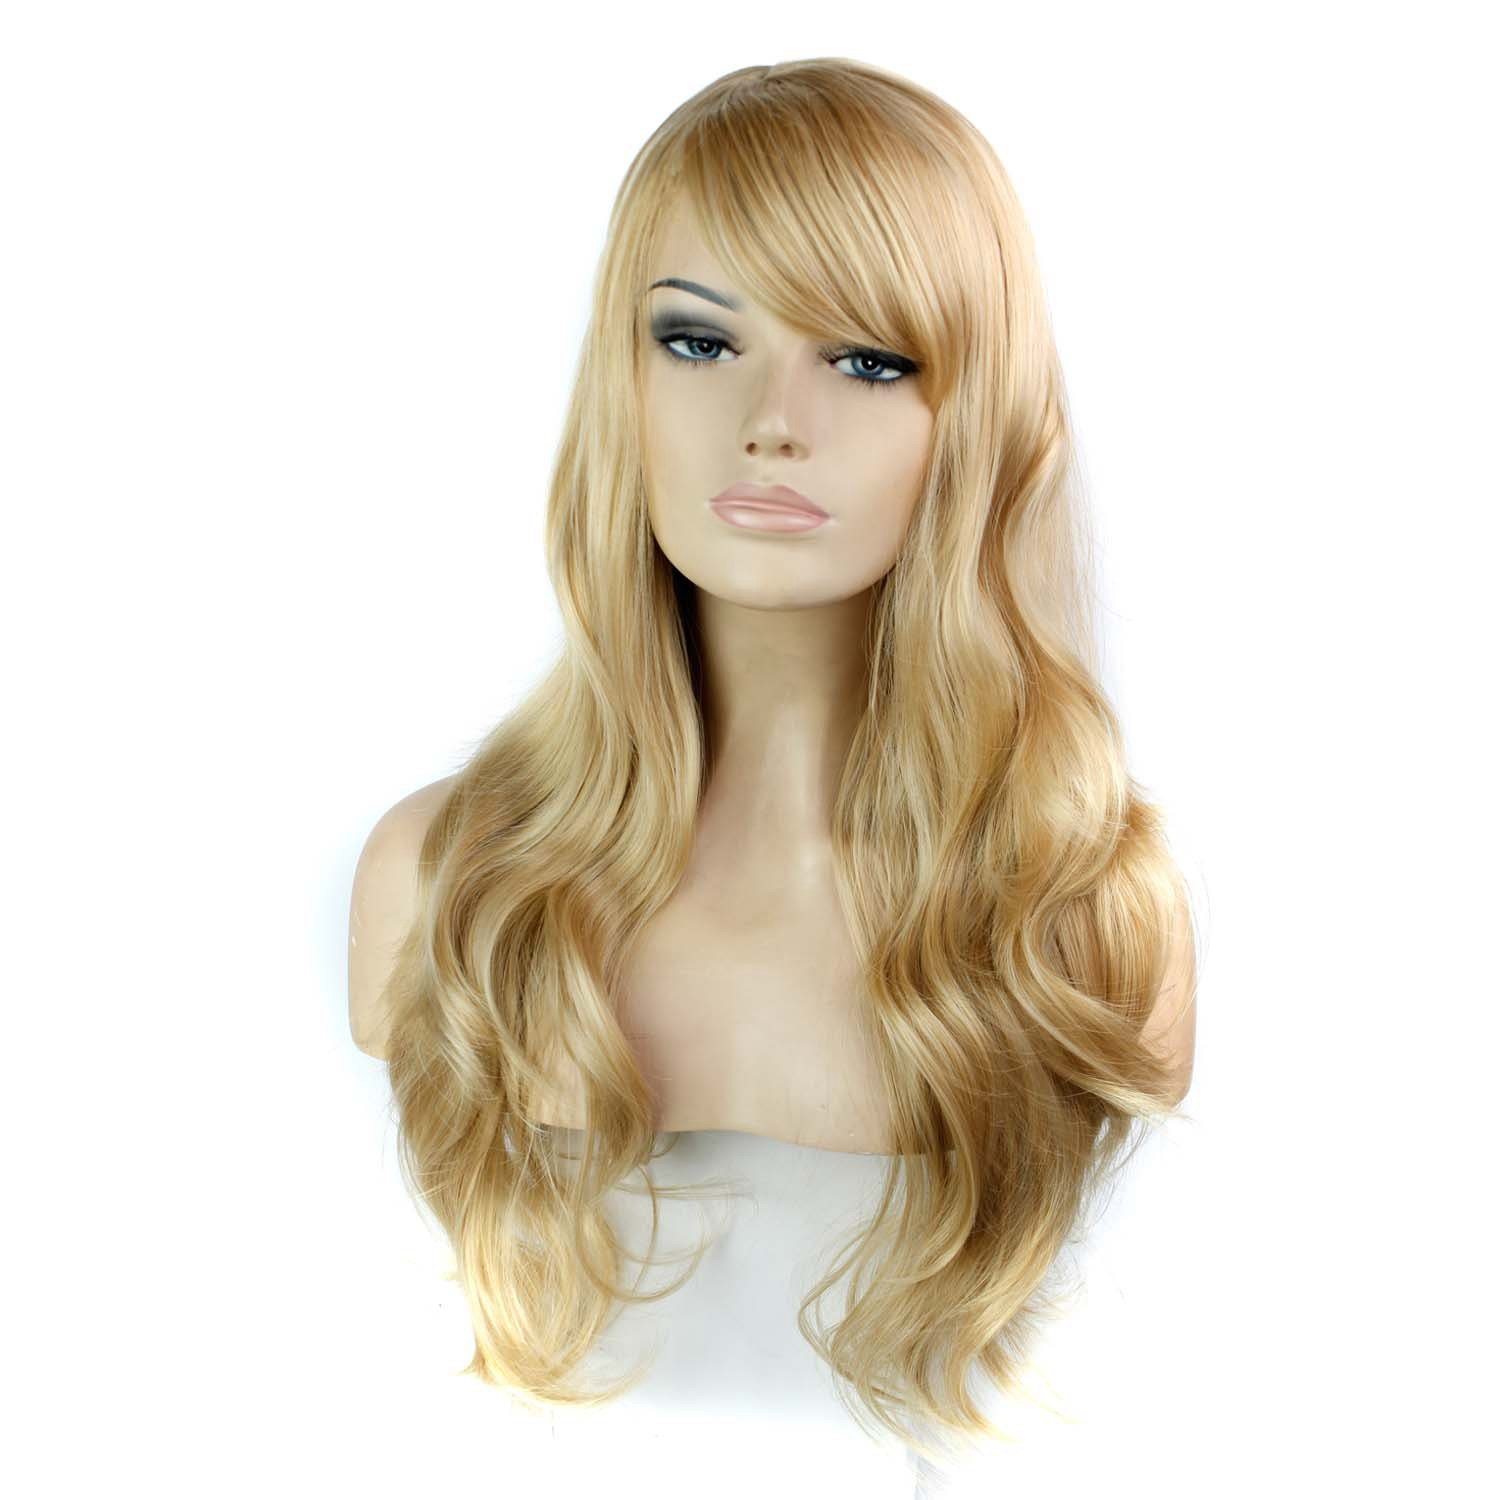 Amazon.com   Fashion Women Wigs for Daily Use Synthetic Hair Wig Popular  Halloween Cosplay Wig   Beauty c076502ece55